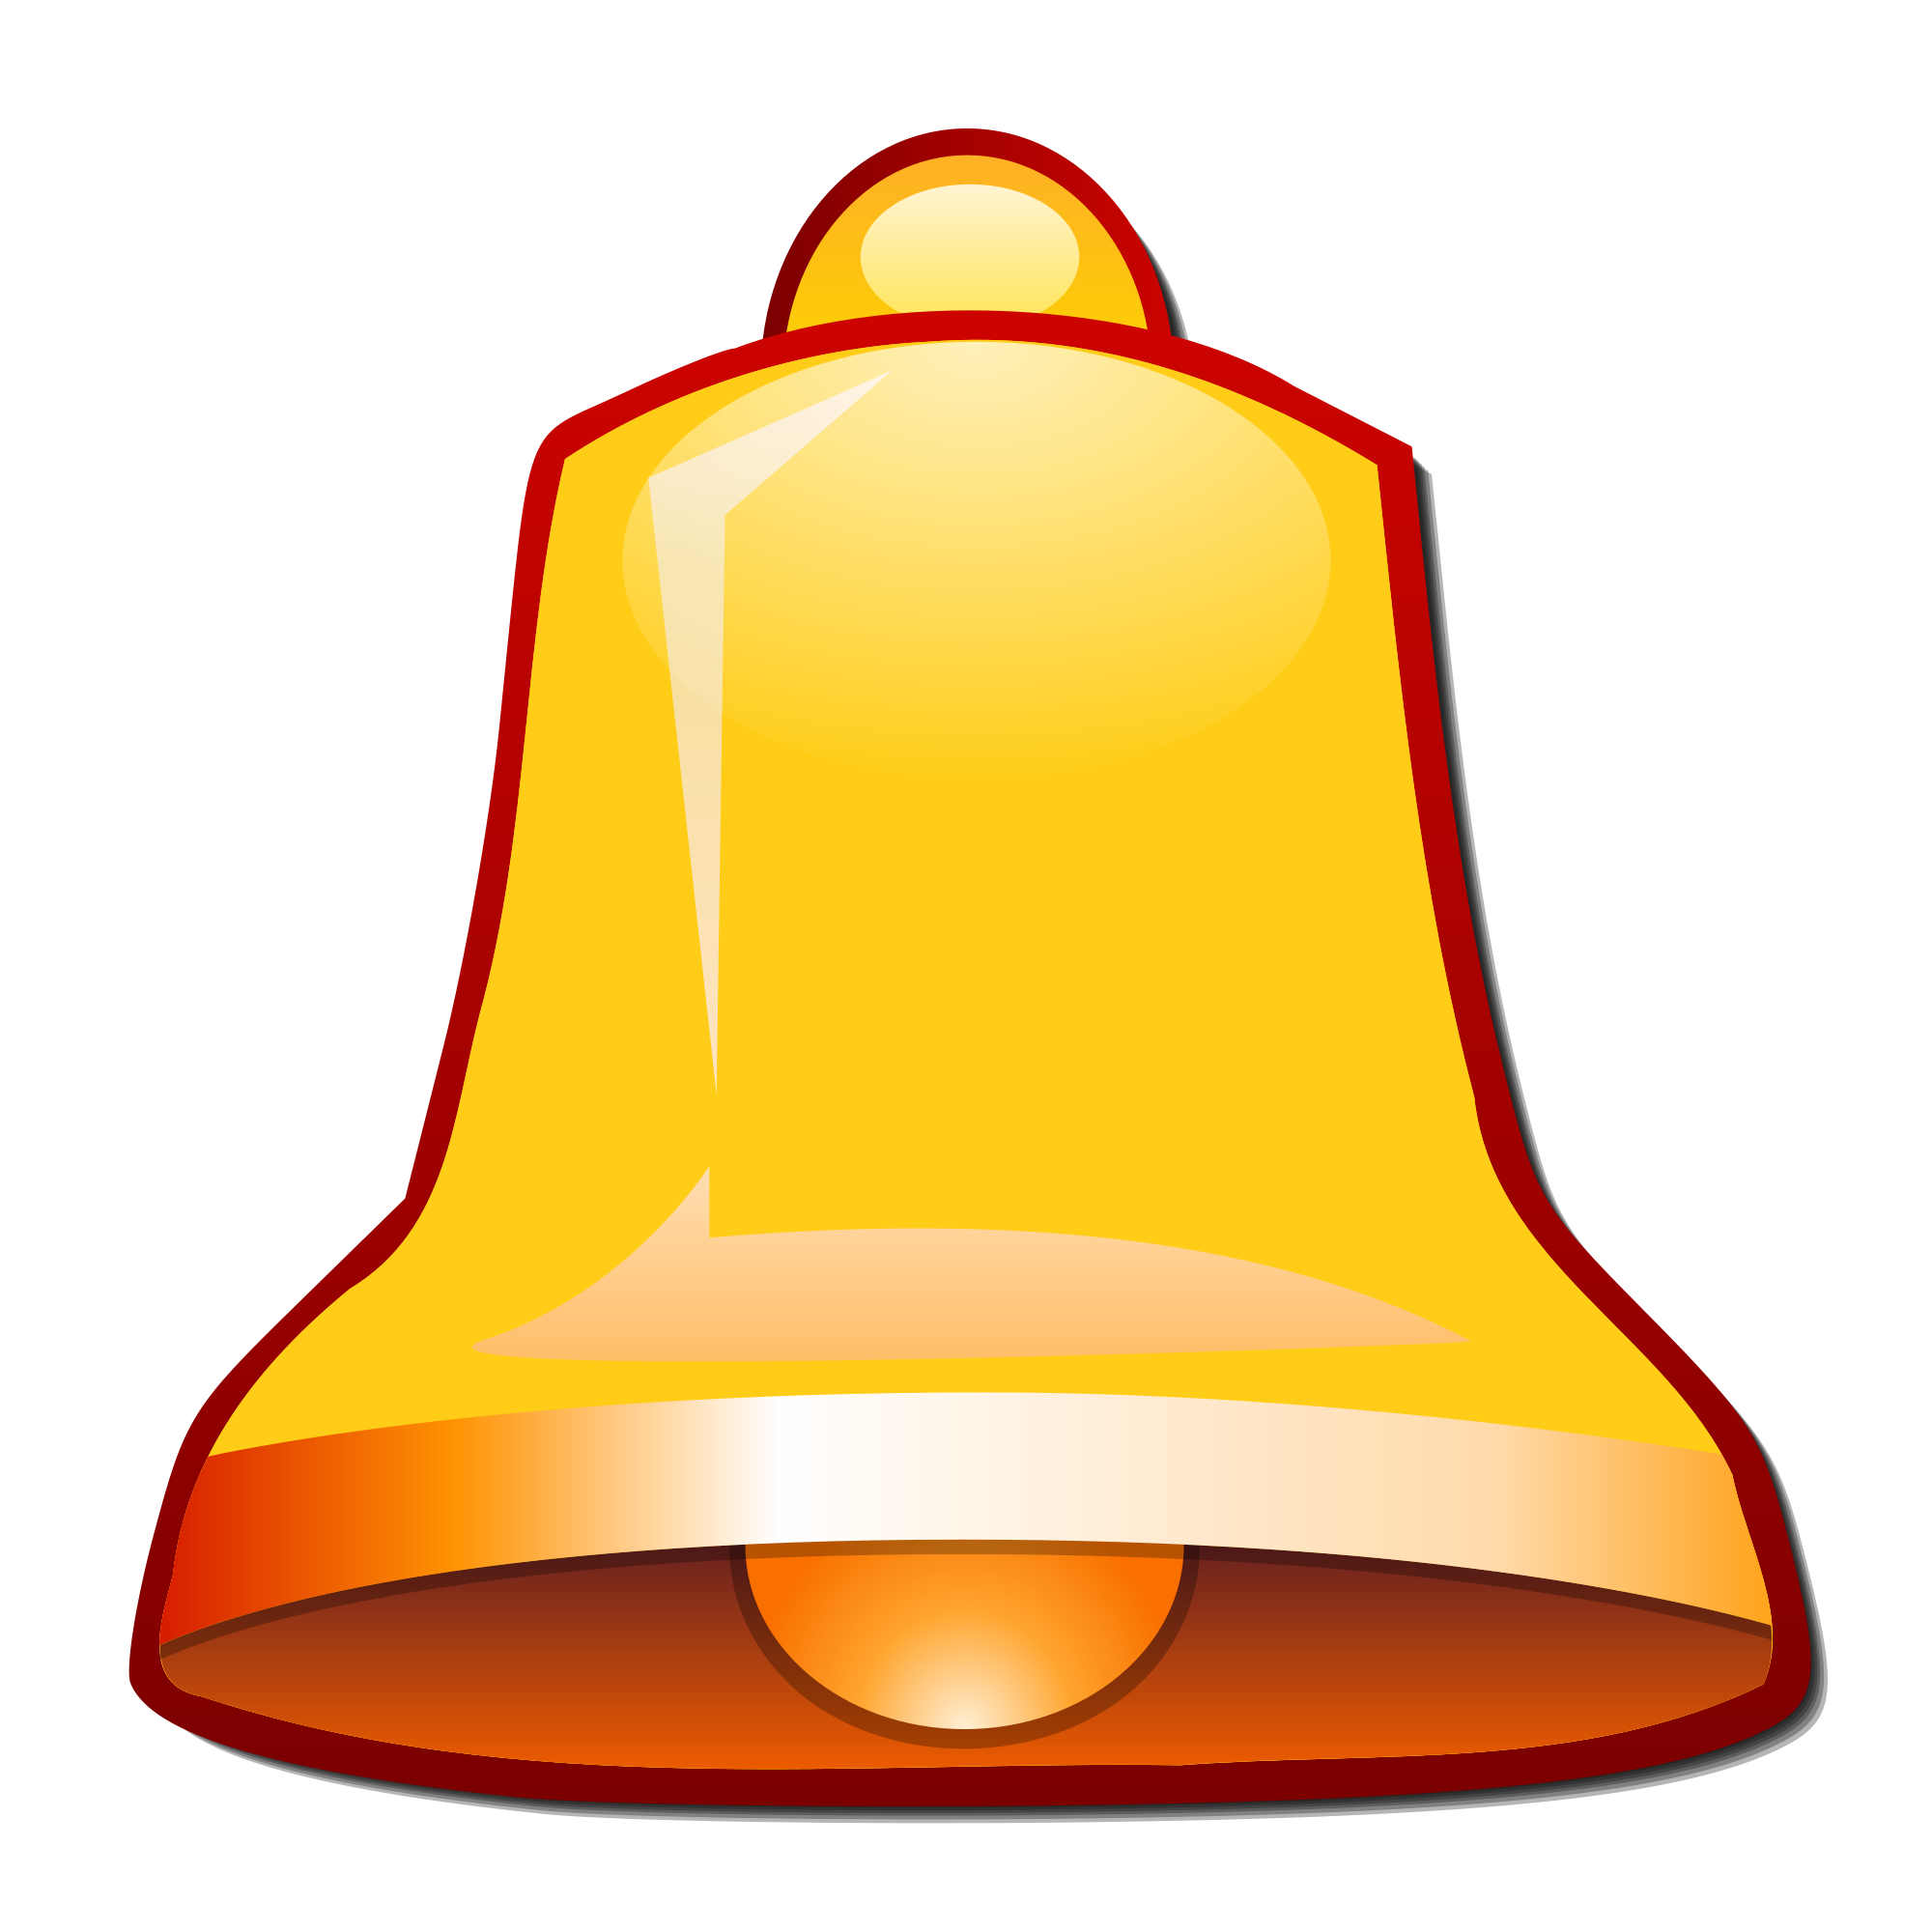 Notification bell png. Transparent images pluspng image